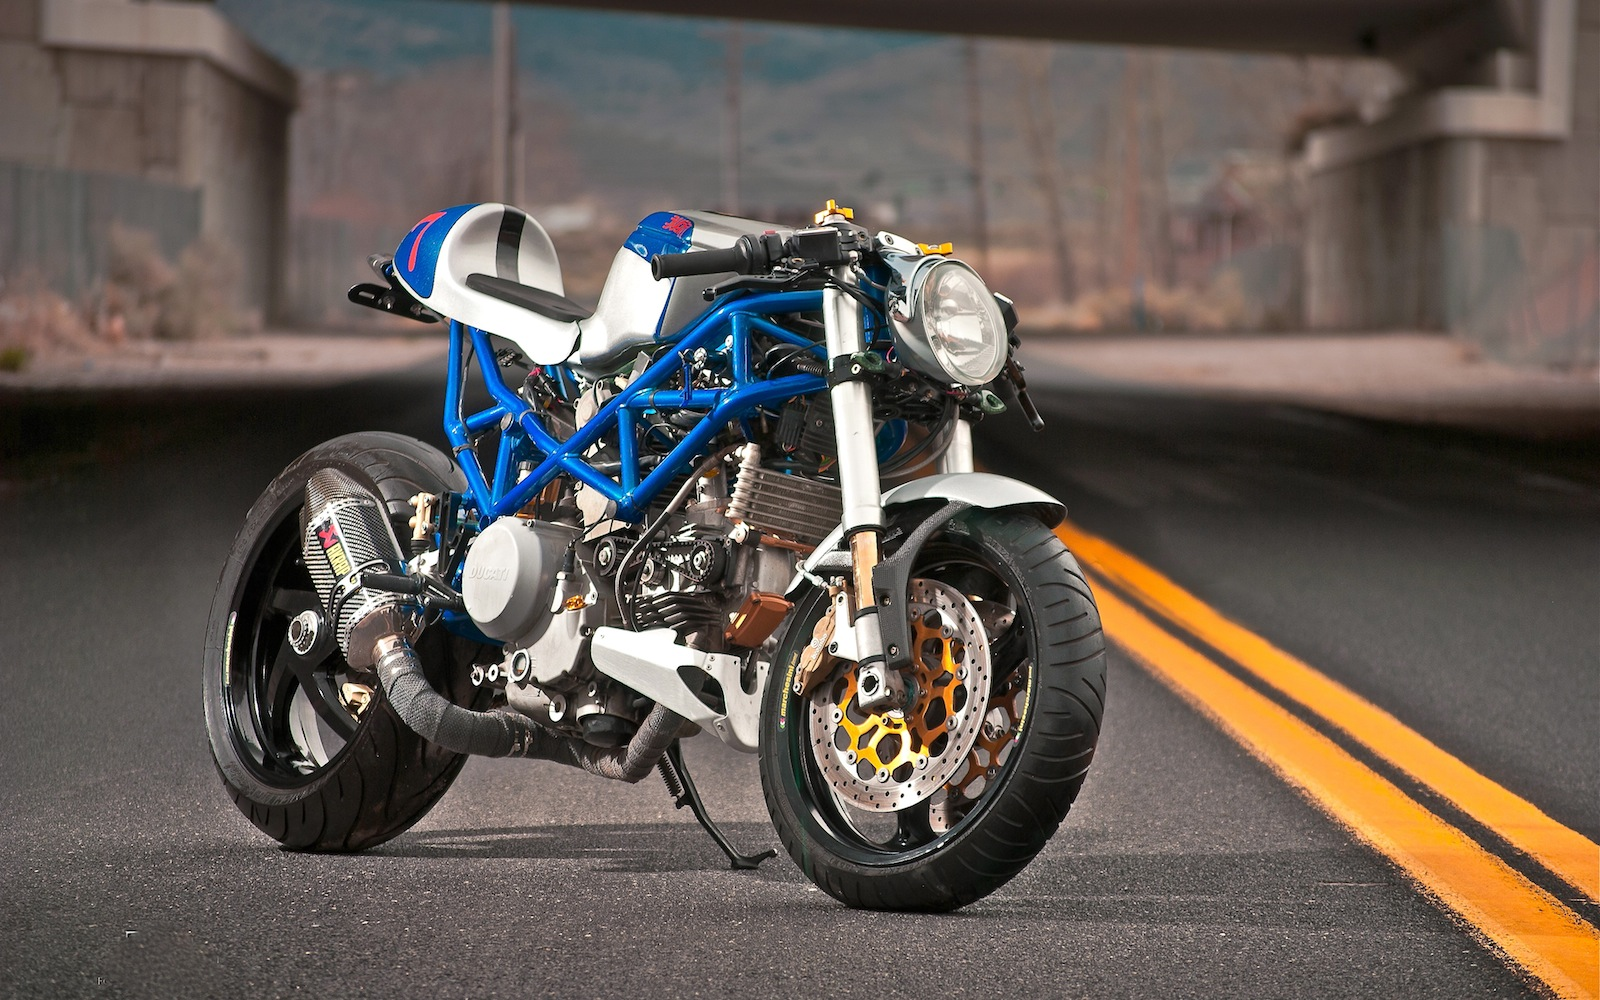 The Reno Monster Inazuma Caf 233 Racer